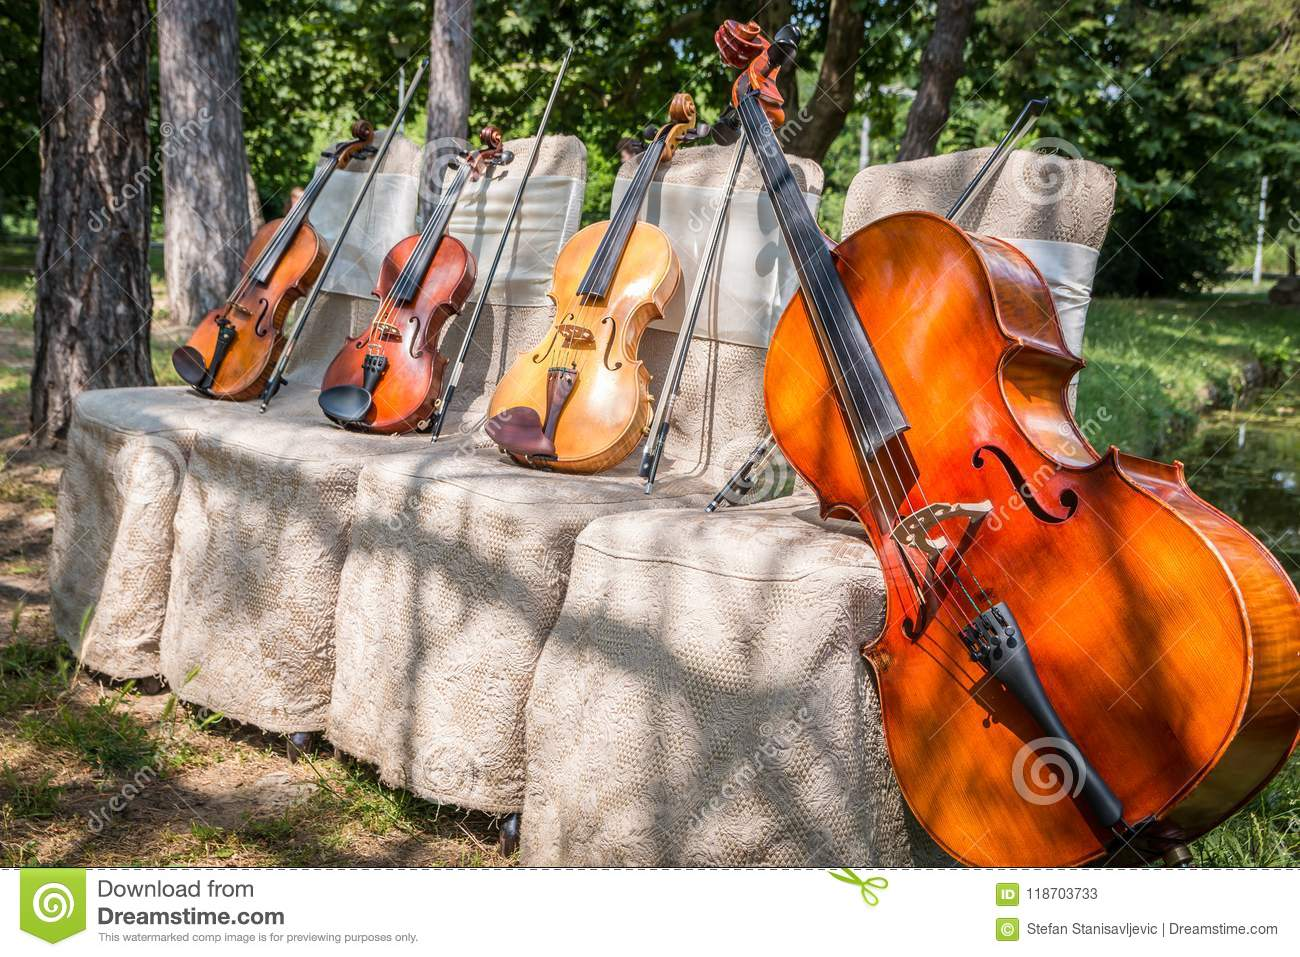 Music Instruments In Nature Stock Image - Image of daylight